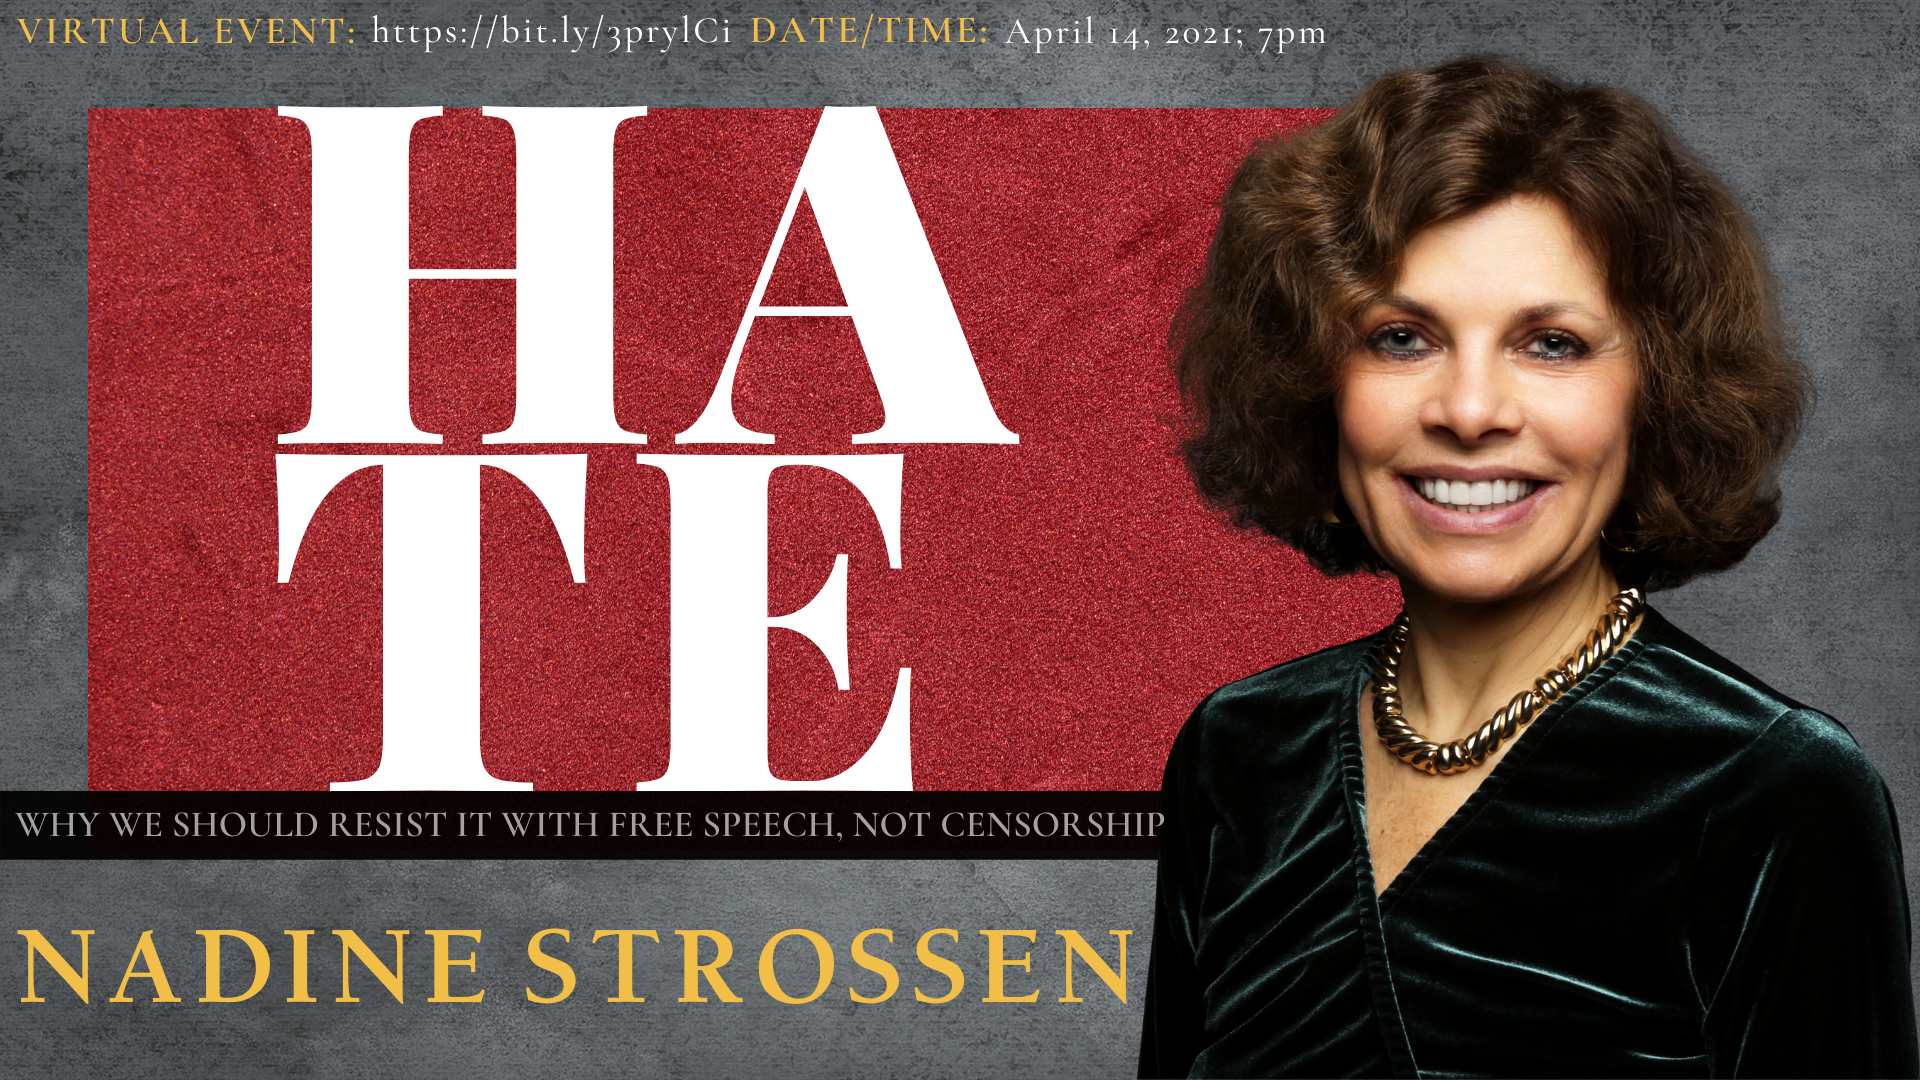 Graphic: Hate: Why We Should Resist It with Free Speech, Not Censorship, Nadine Strossen, April 14, 2021 7 p.m.